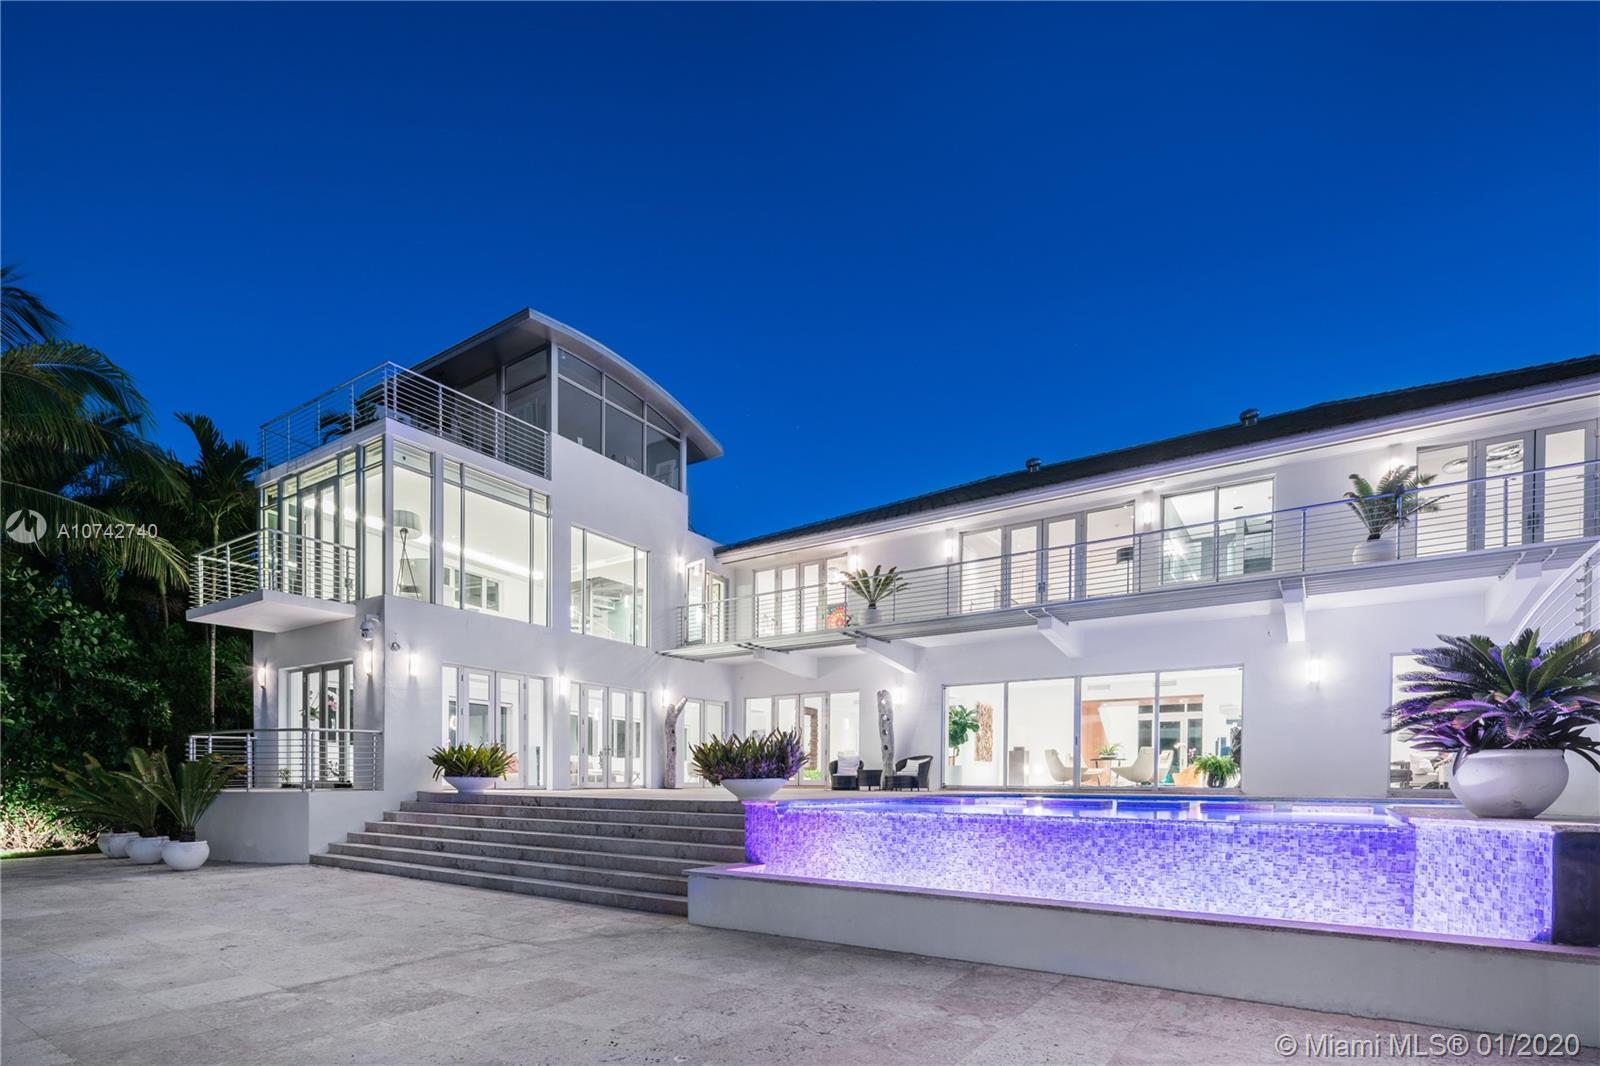 Entertain on a grand scale at this estate on Miami Beach's idyllic Sunset Island II. Your guests wil